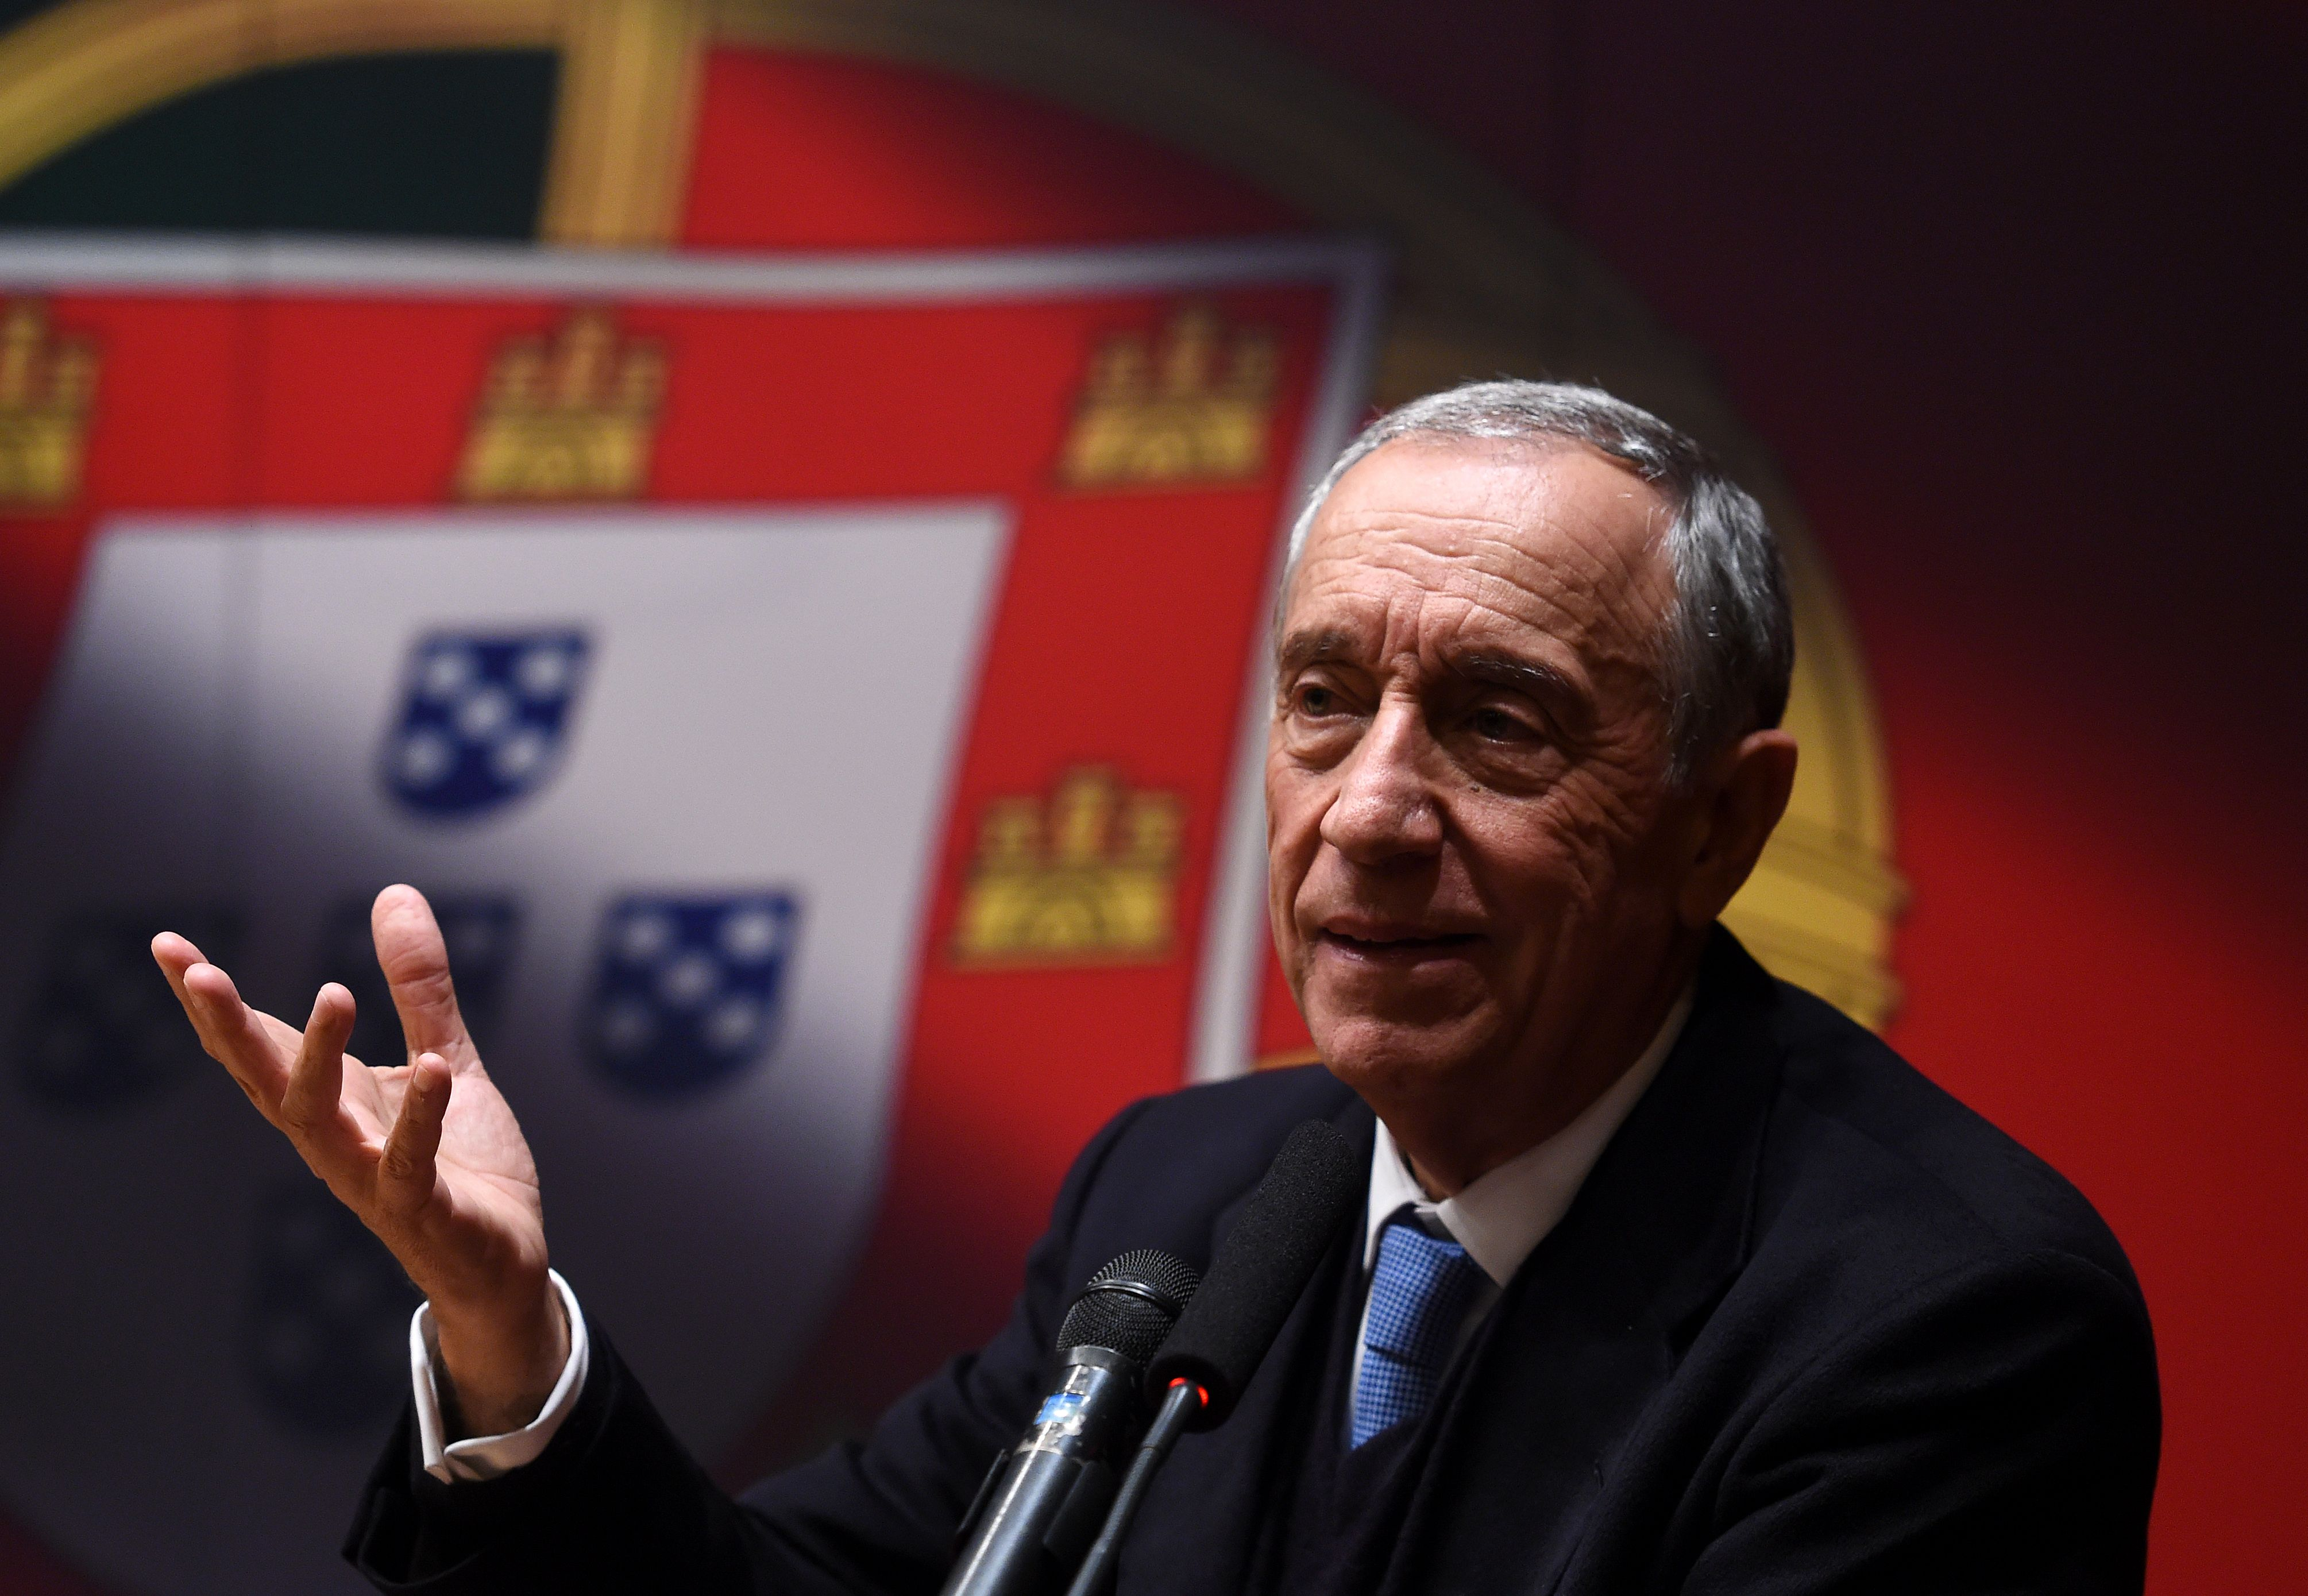 Portugal's leaders celebrate historic Eurovision Song Contest victory